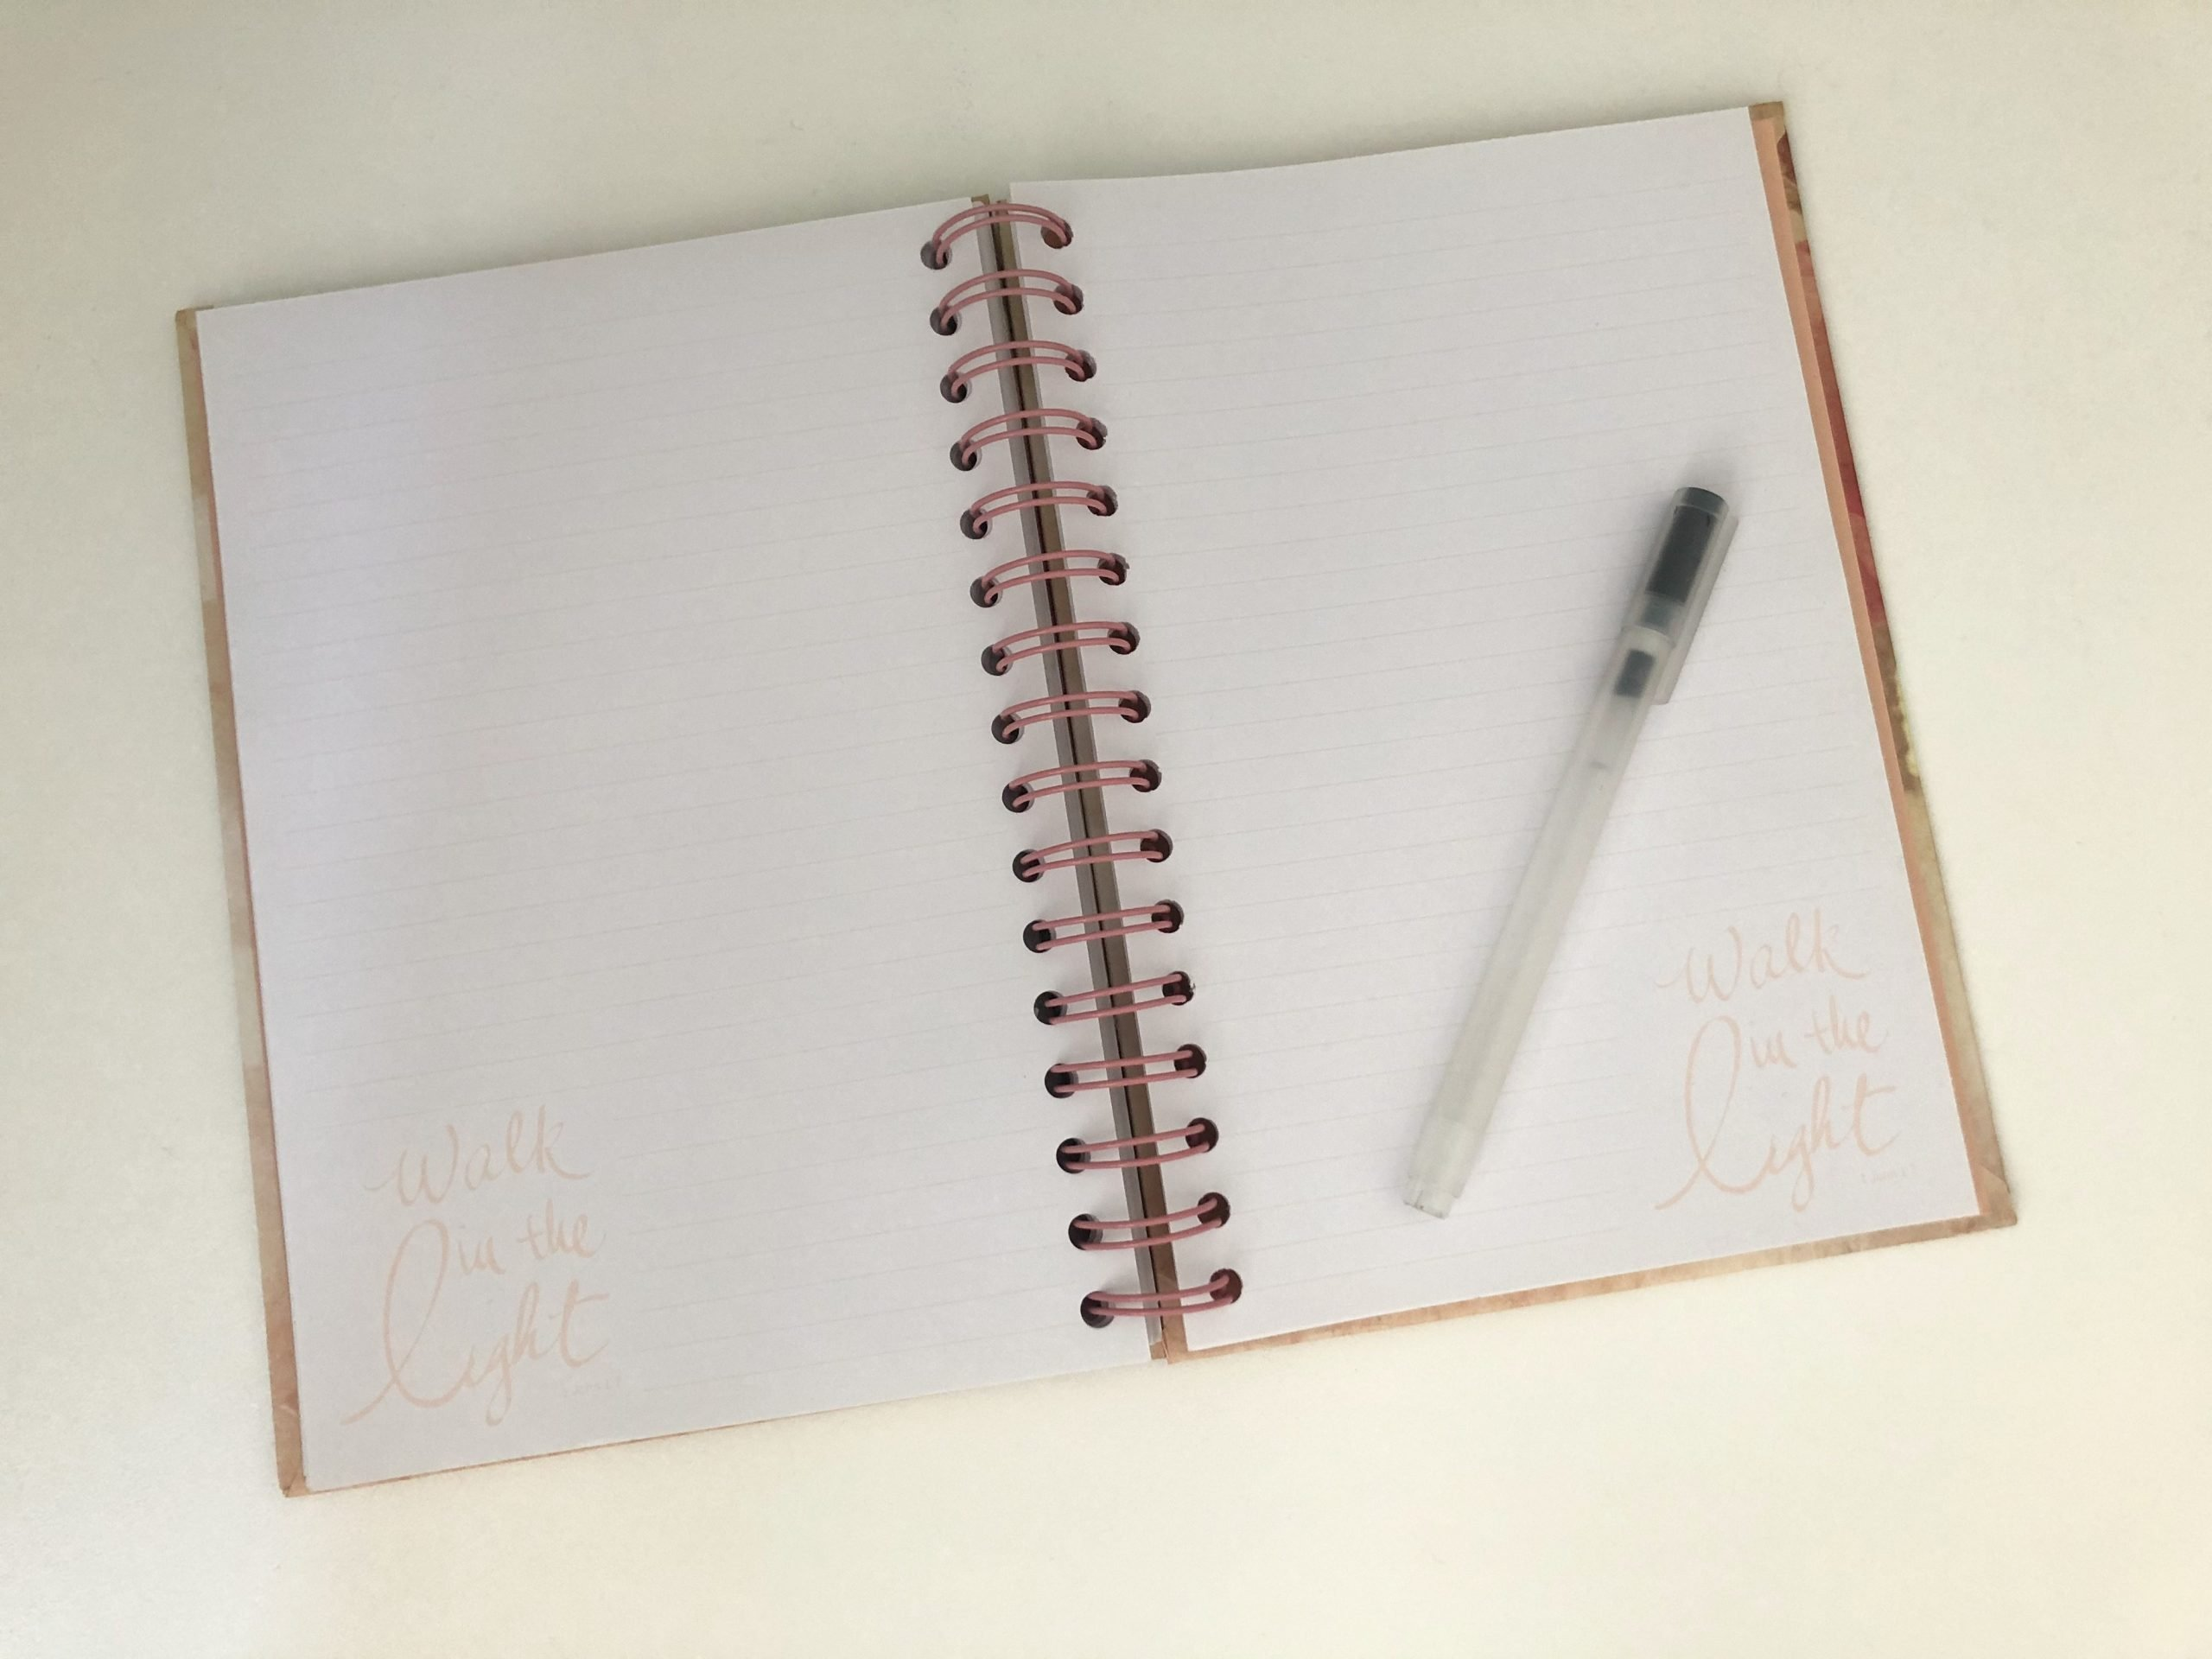 picture of my journal open to two blank pages, a pen rests on it. ready to start writing morning pages.